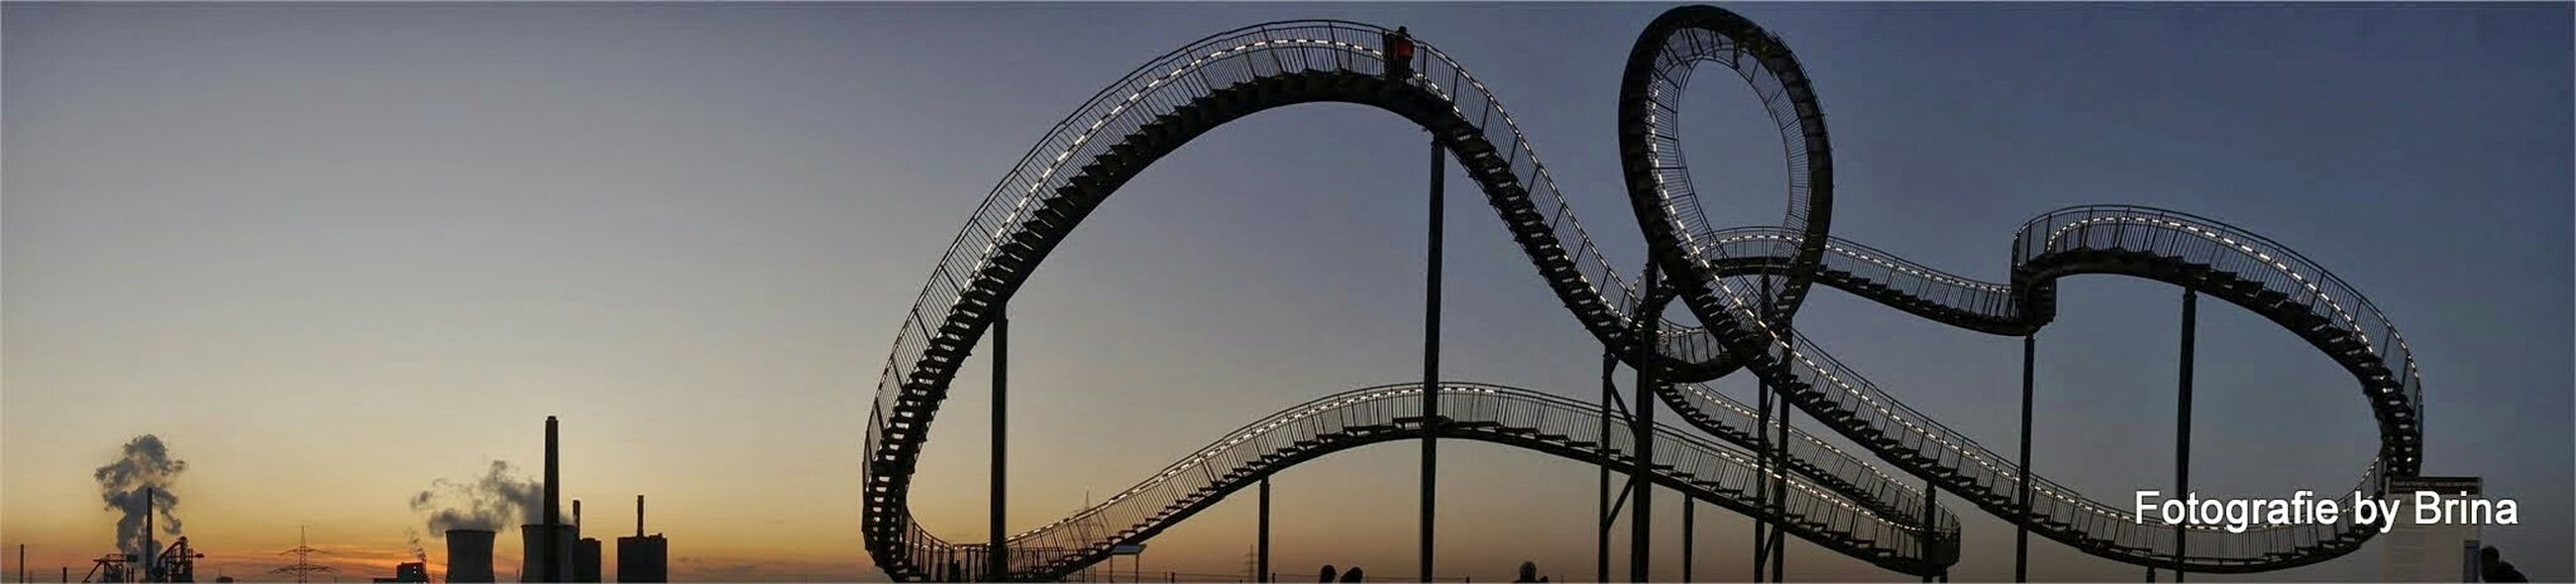 Panorama Ruhrgebiet Bluehour Roller Coaster Angerbach | Duisburg Tiger & Turtle Landmark Industry My Country In A Photo Amazing Architecture Landscapes With WhiteWall